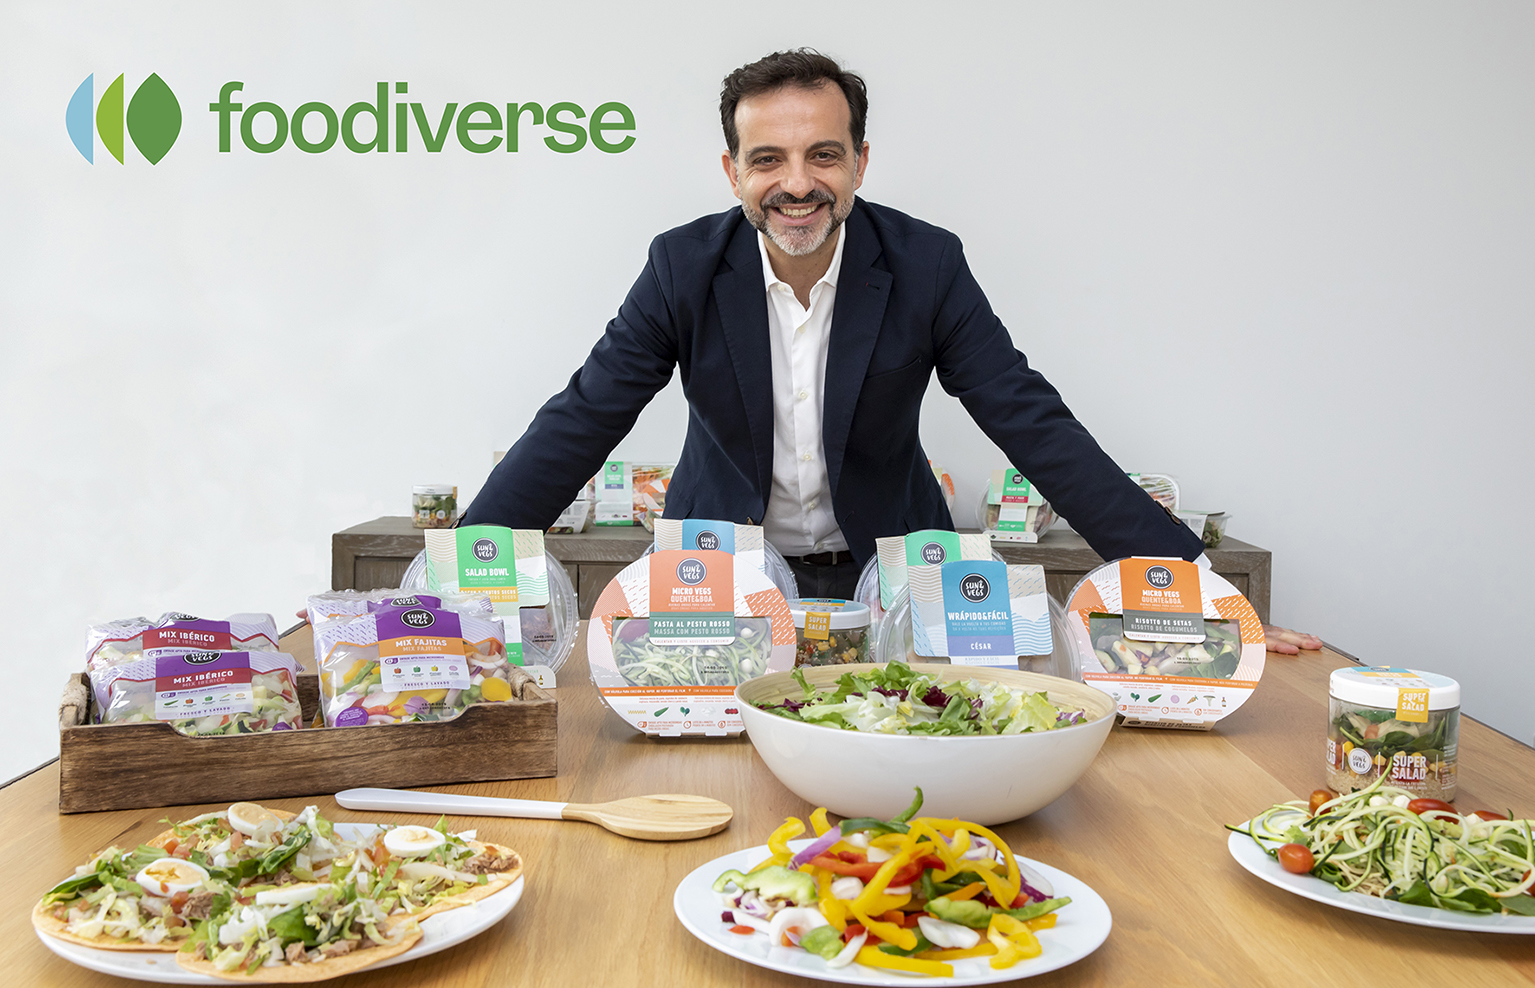 Foodiverse achieves turnover of €311m in 2020